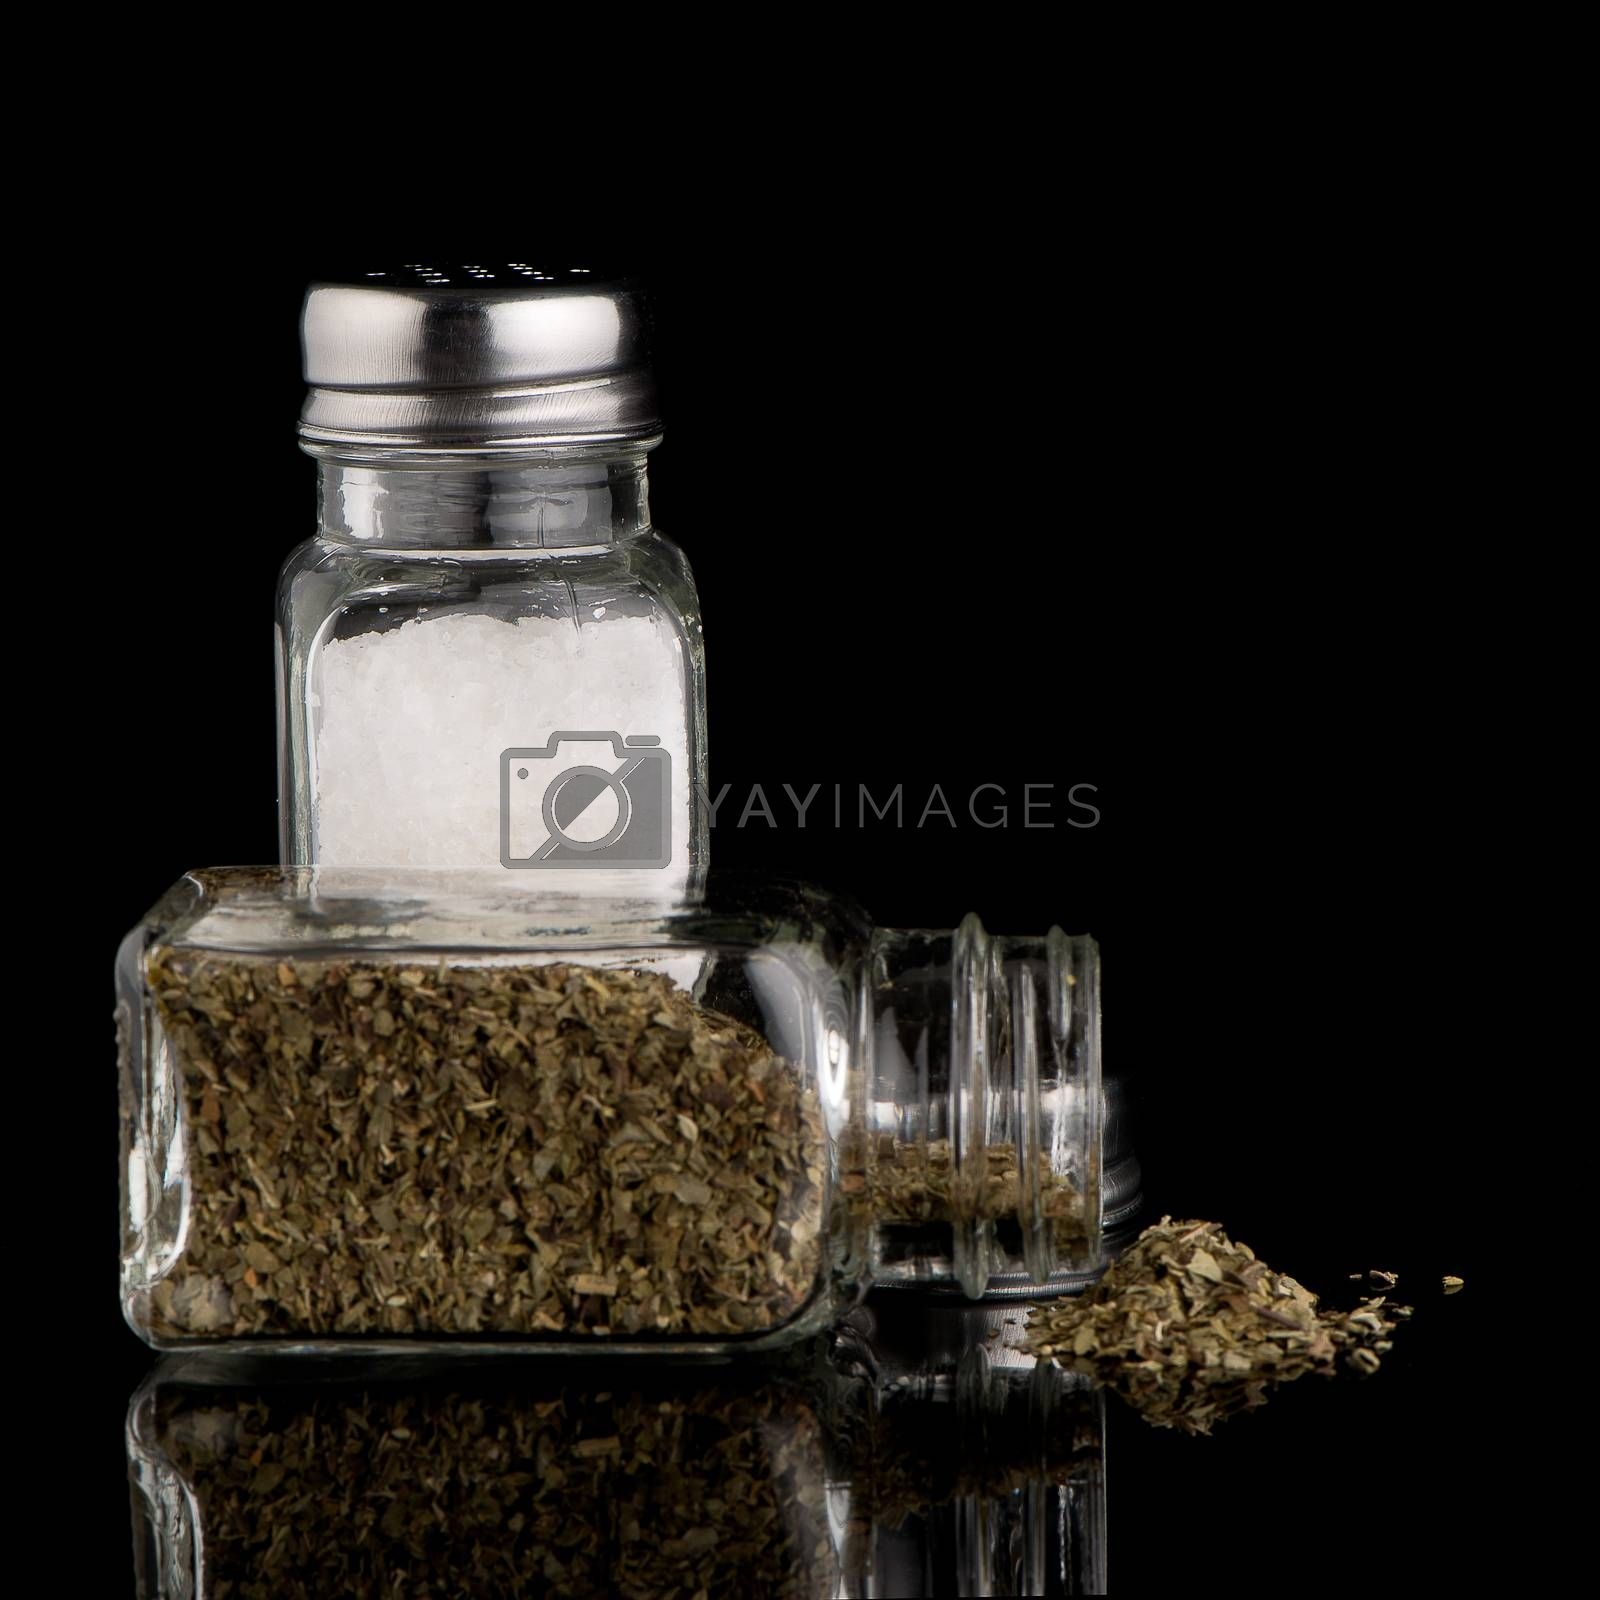 Royalty free image of  Salt and oregano shakers by homydesign